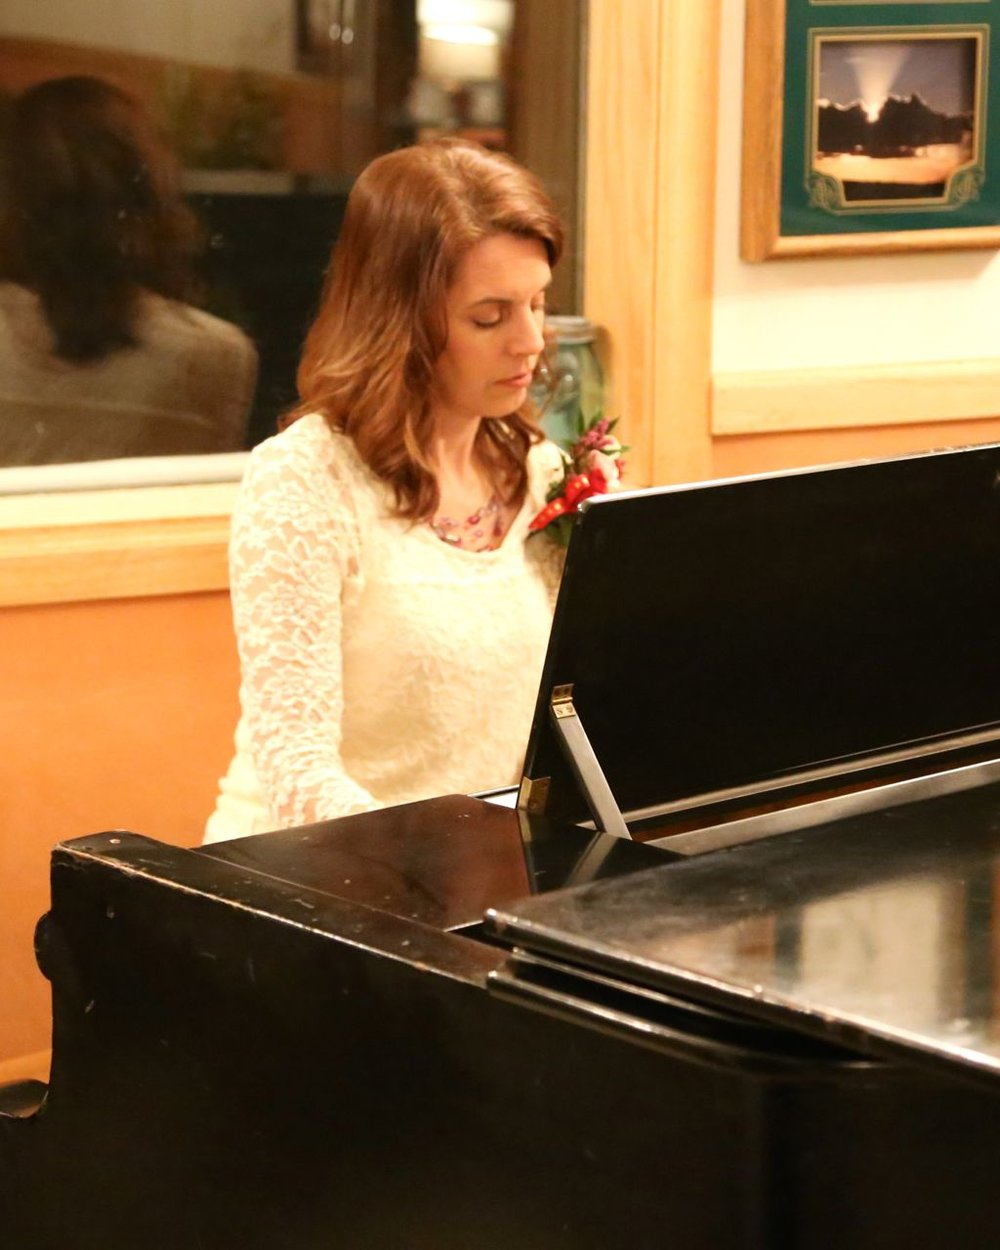 - And Robin Reinhold provided beautiful dinner music. The Valentine Banquet at RBR was certainly a delight.